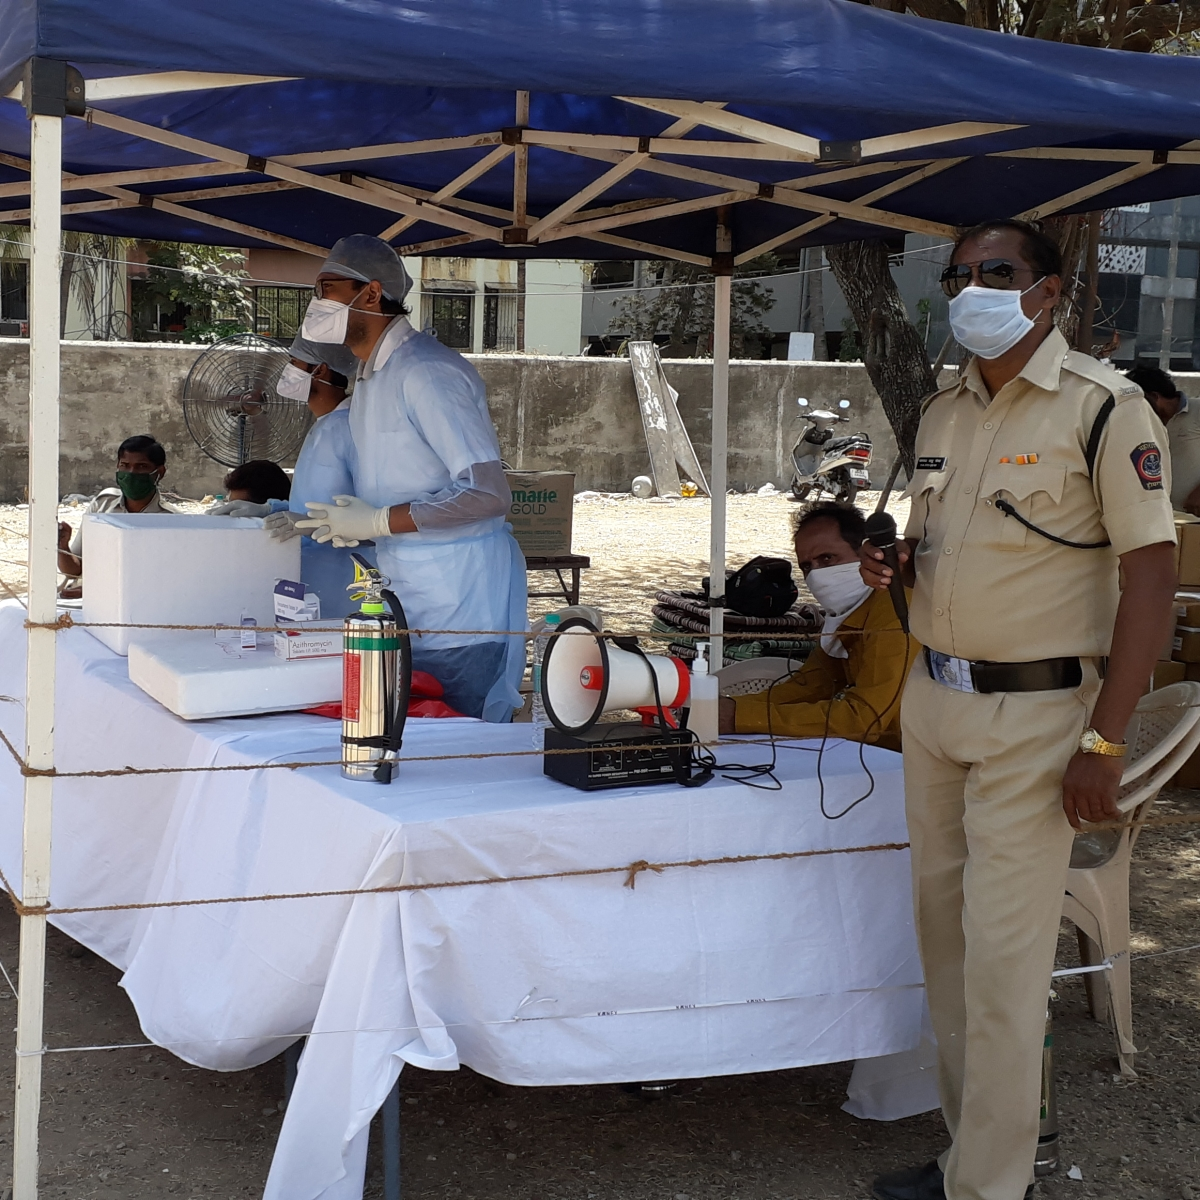 Coronavirus in Mumbai: From patients hiding info to lack of safety, this is the life of a doctor battling COVID-19